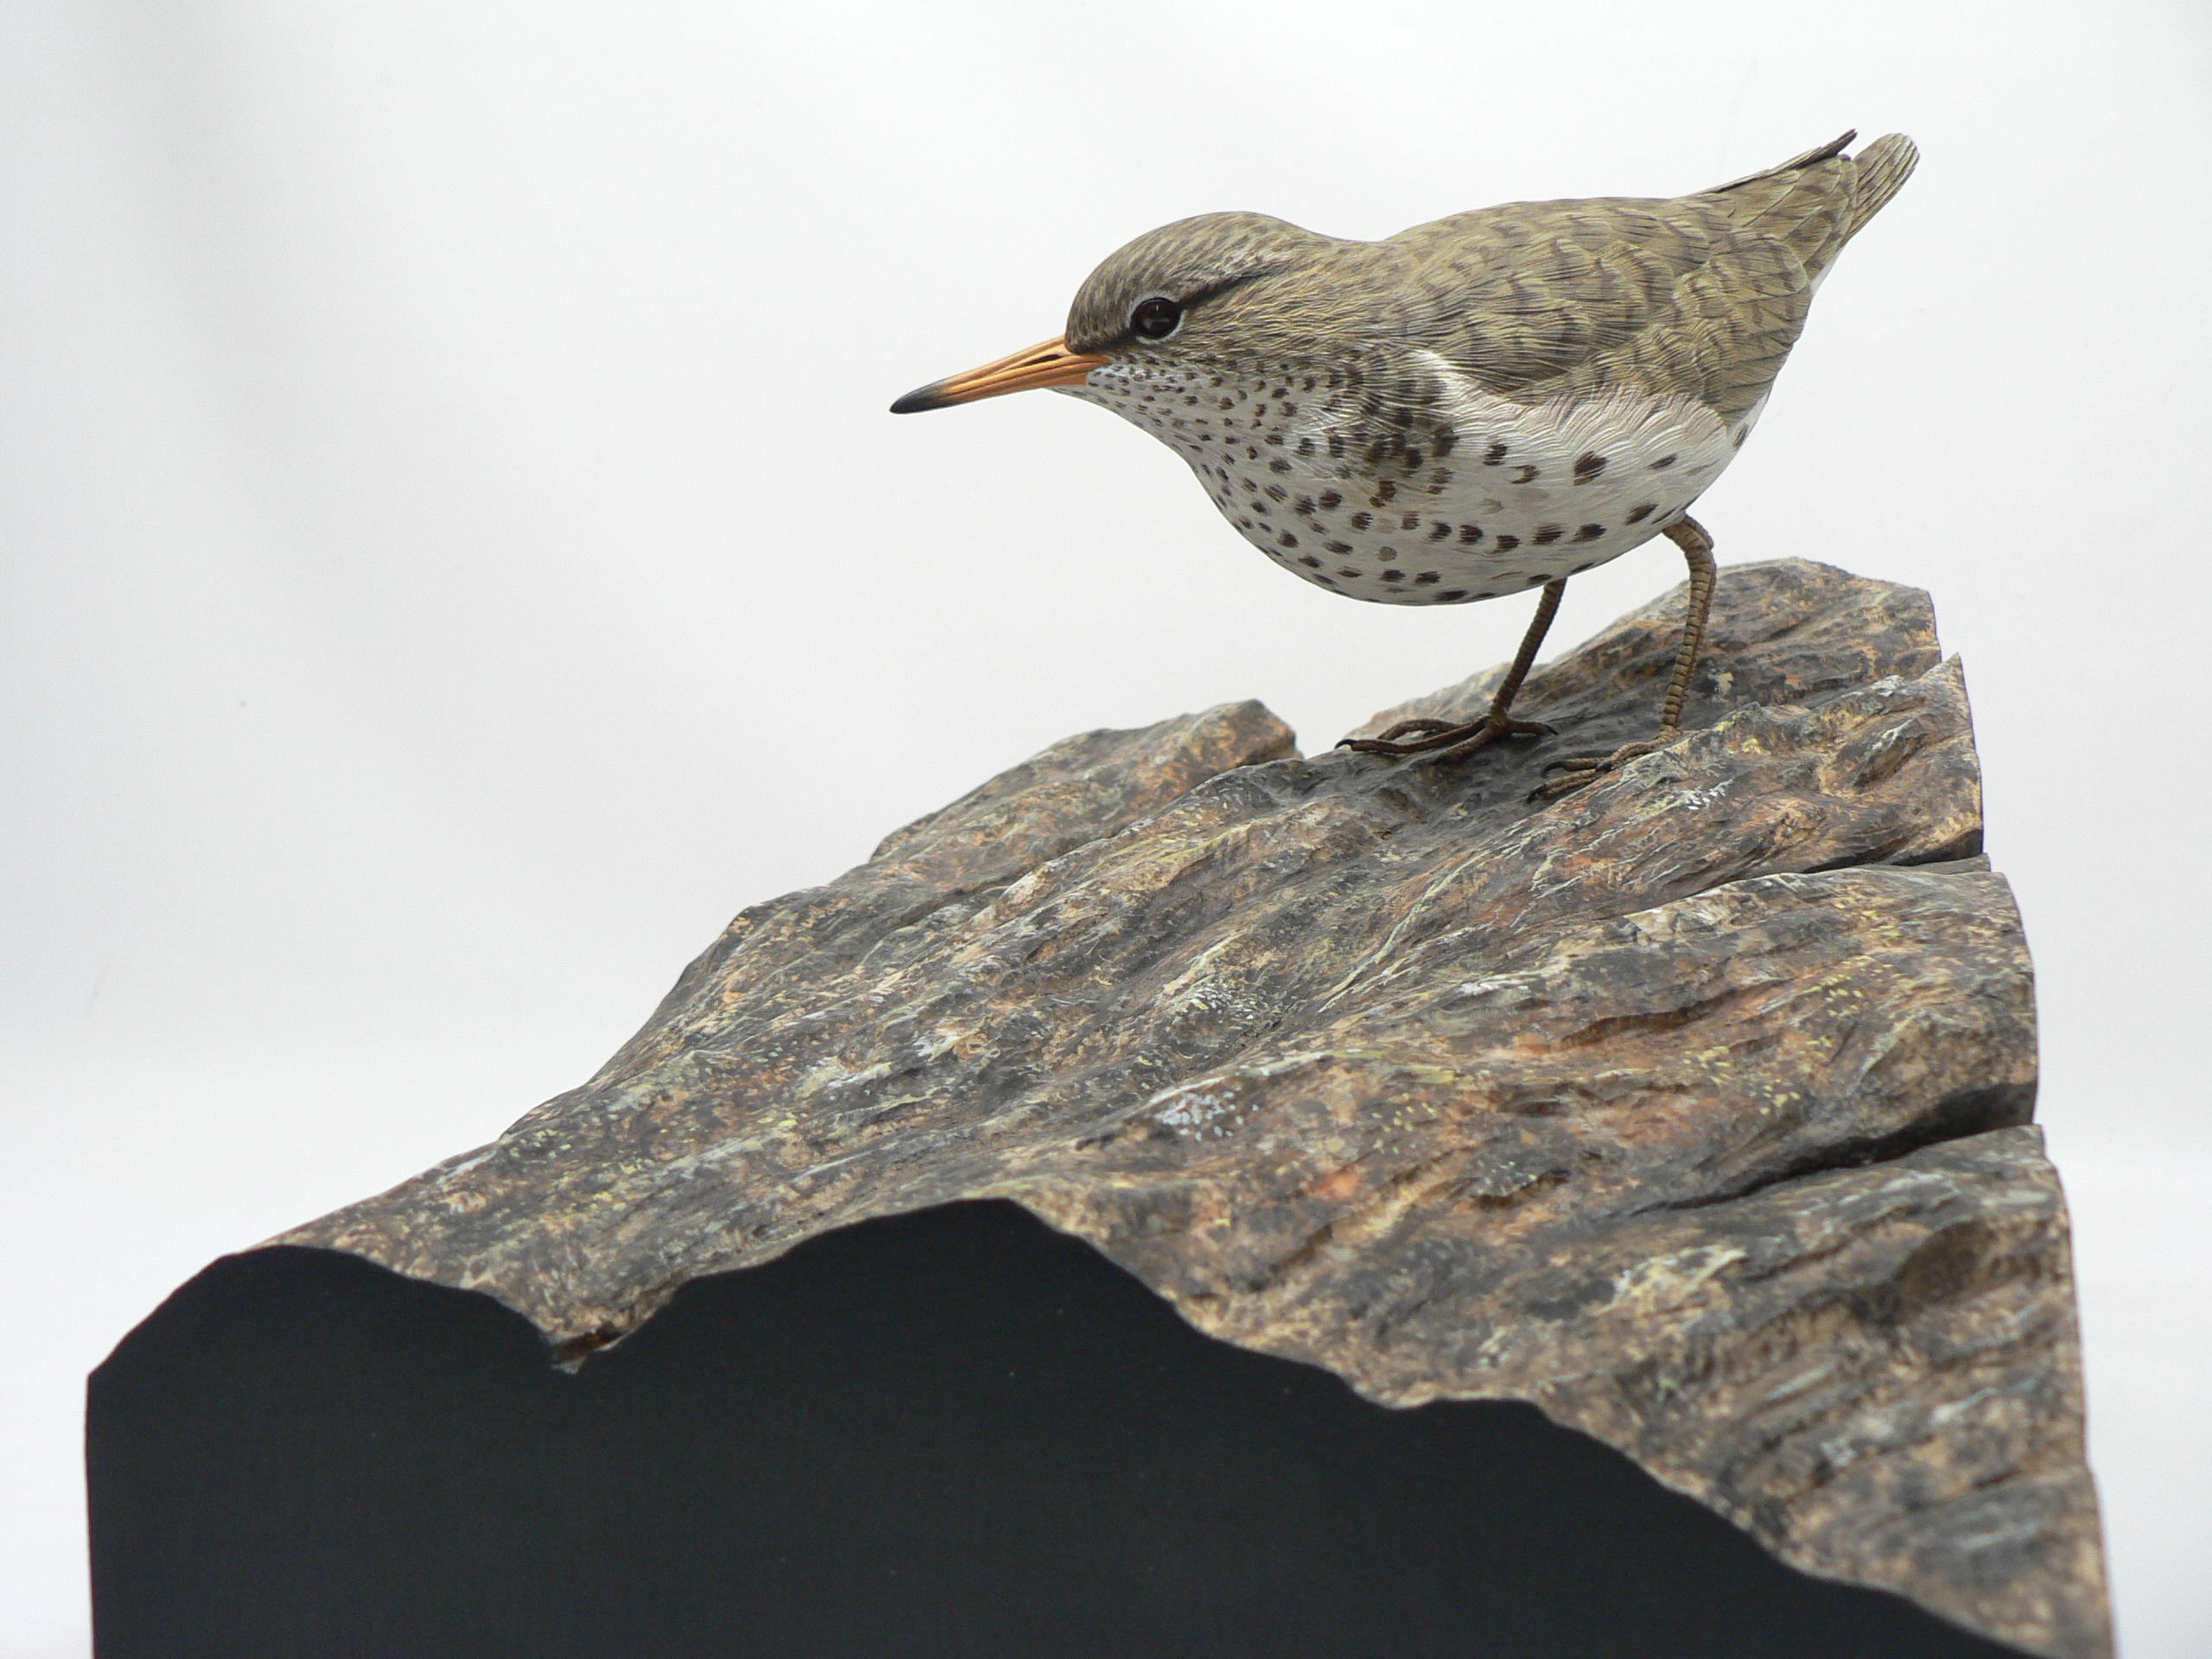 Spotted sandpiper carving by Jason Lucio